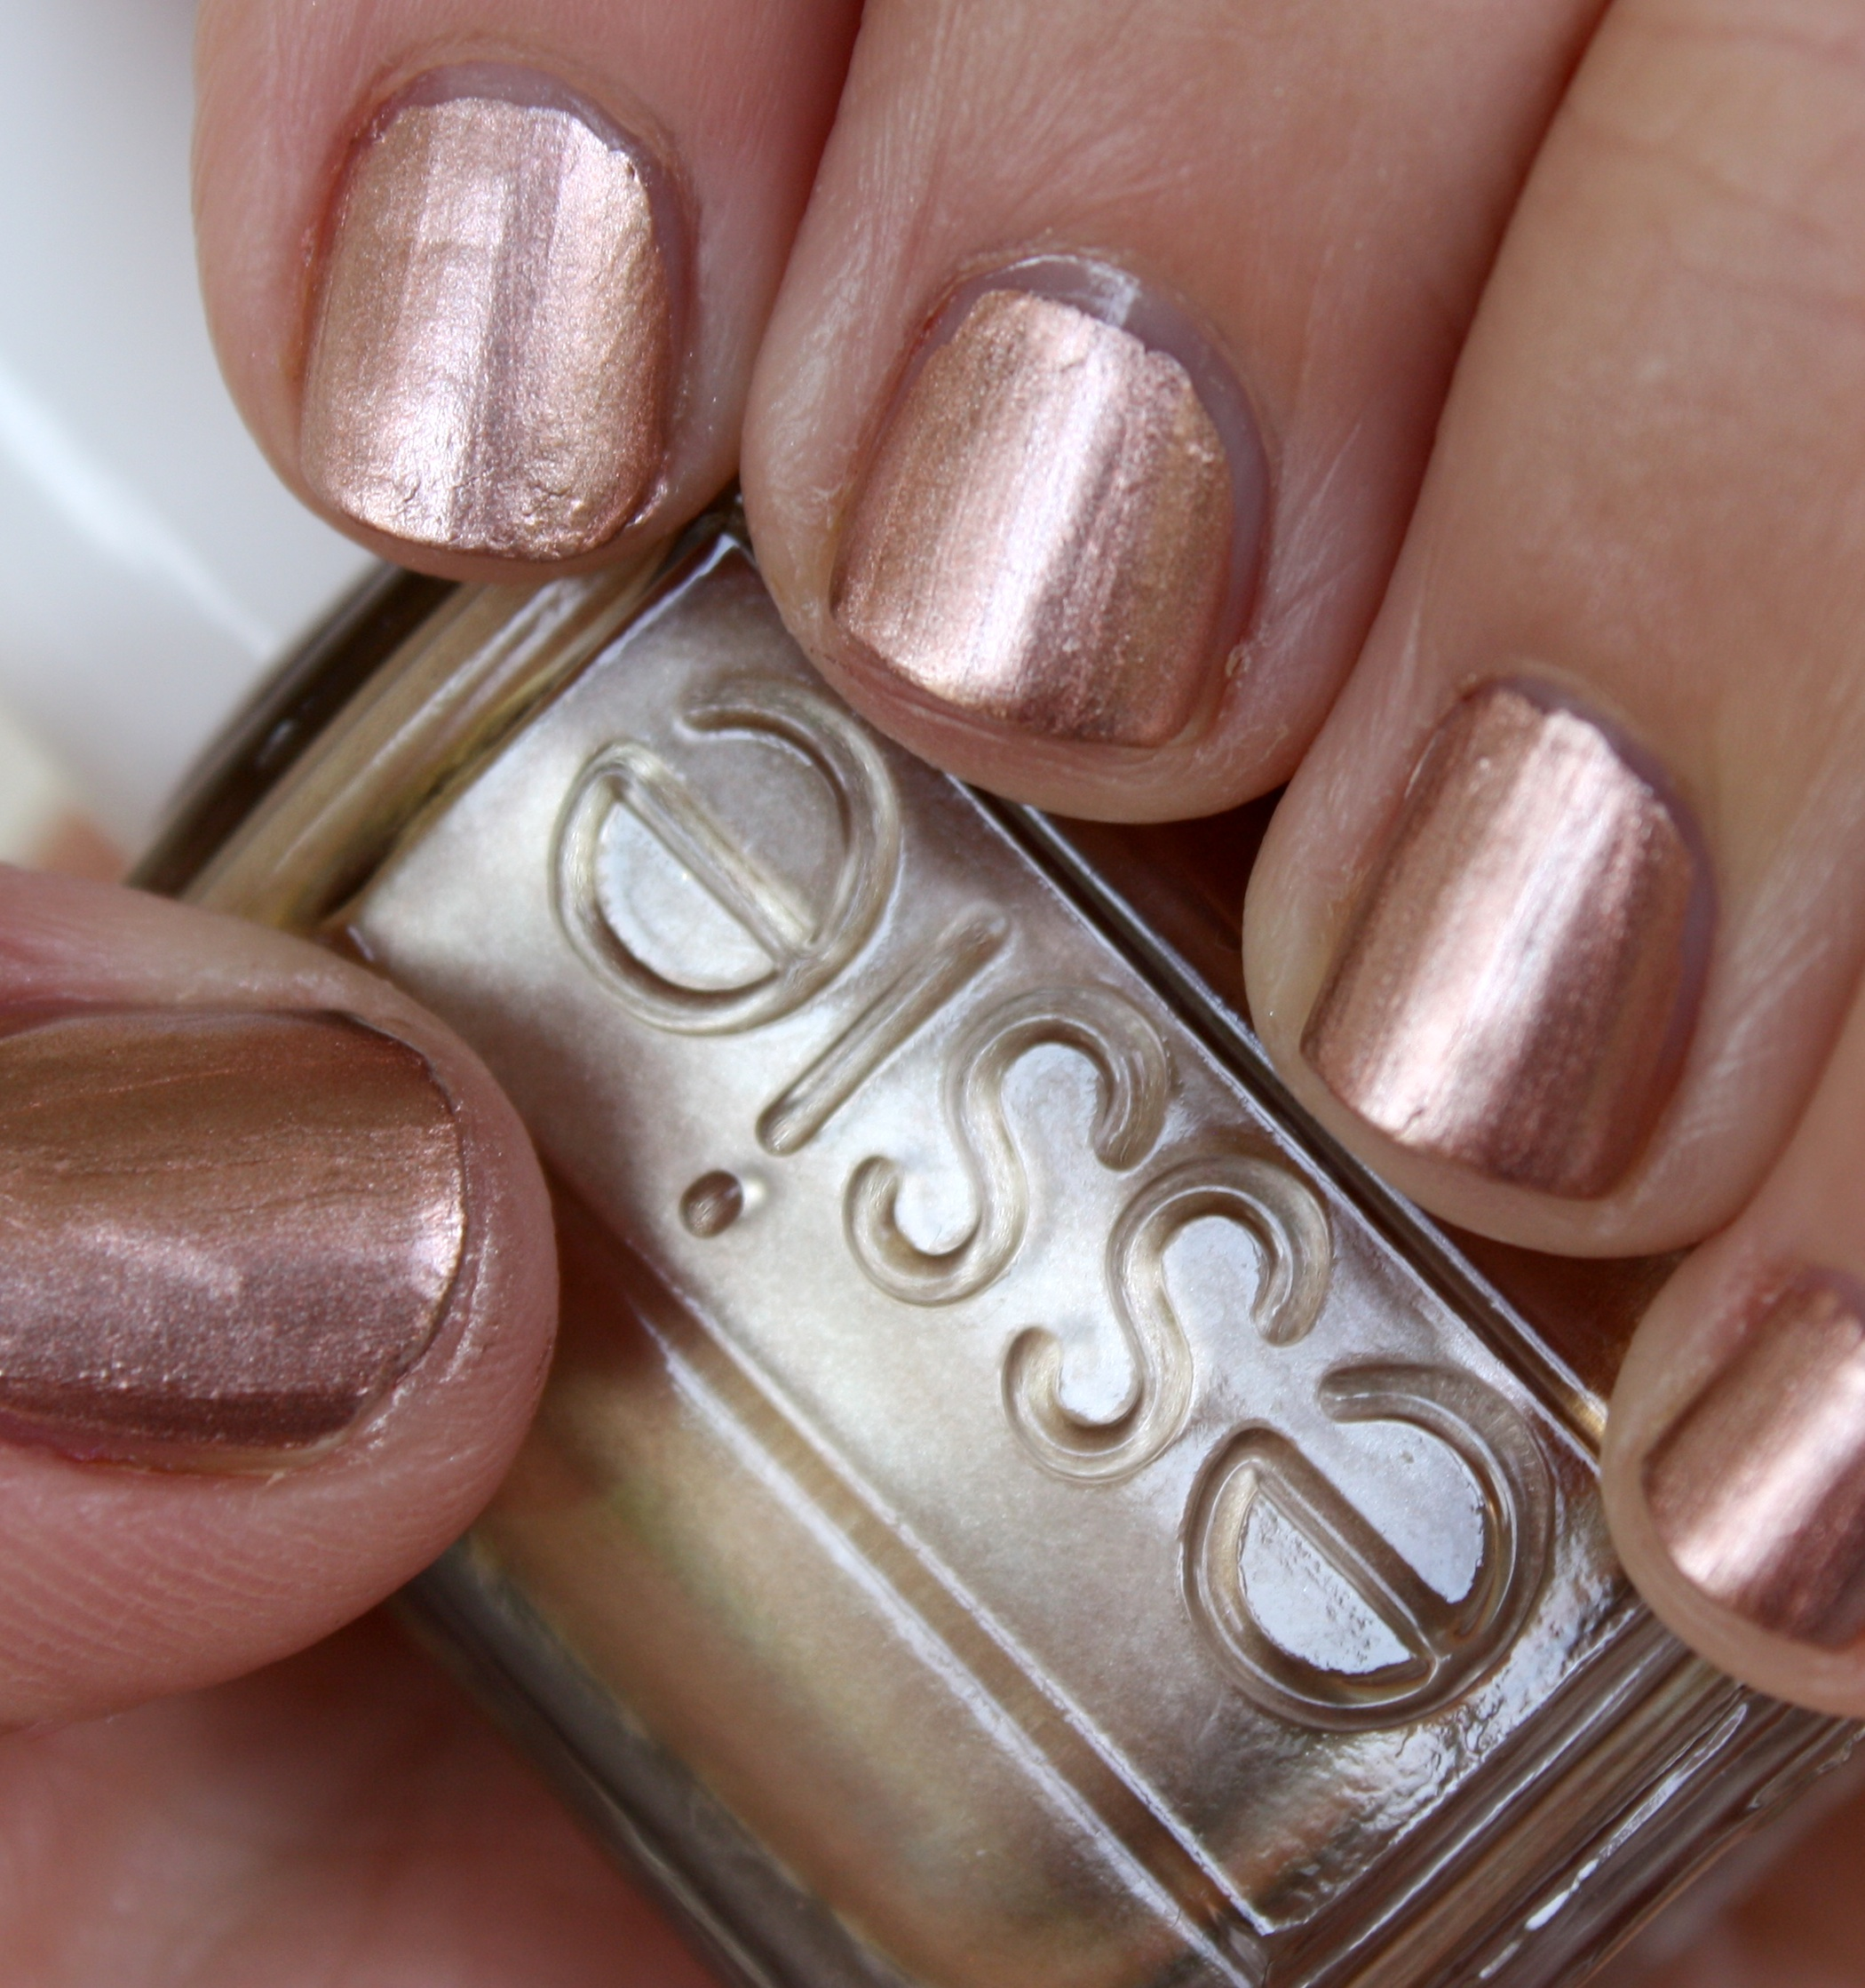 Essie Penny Talk – horrendous color